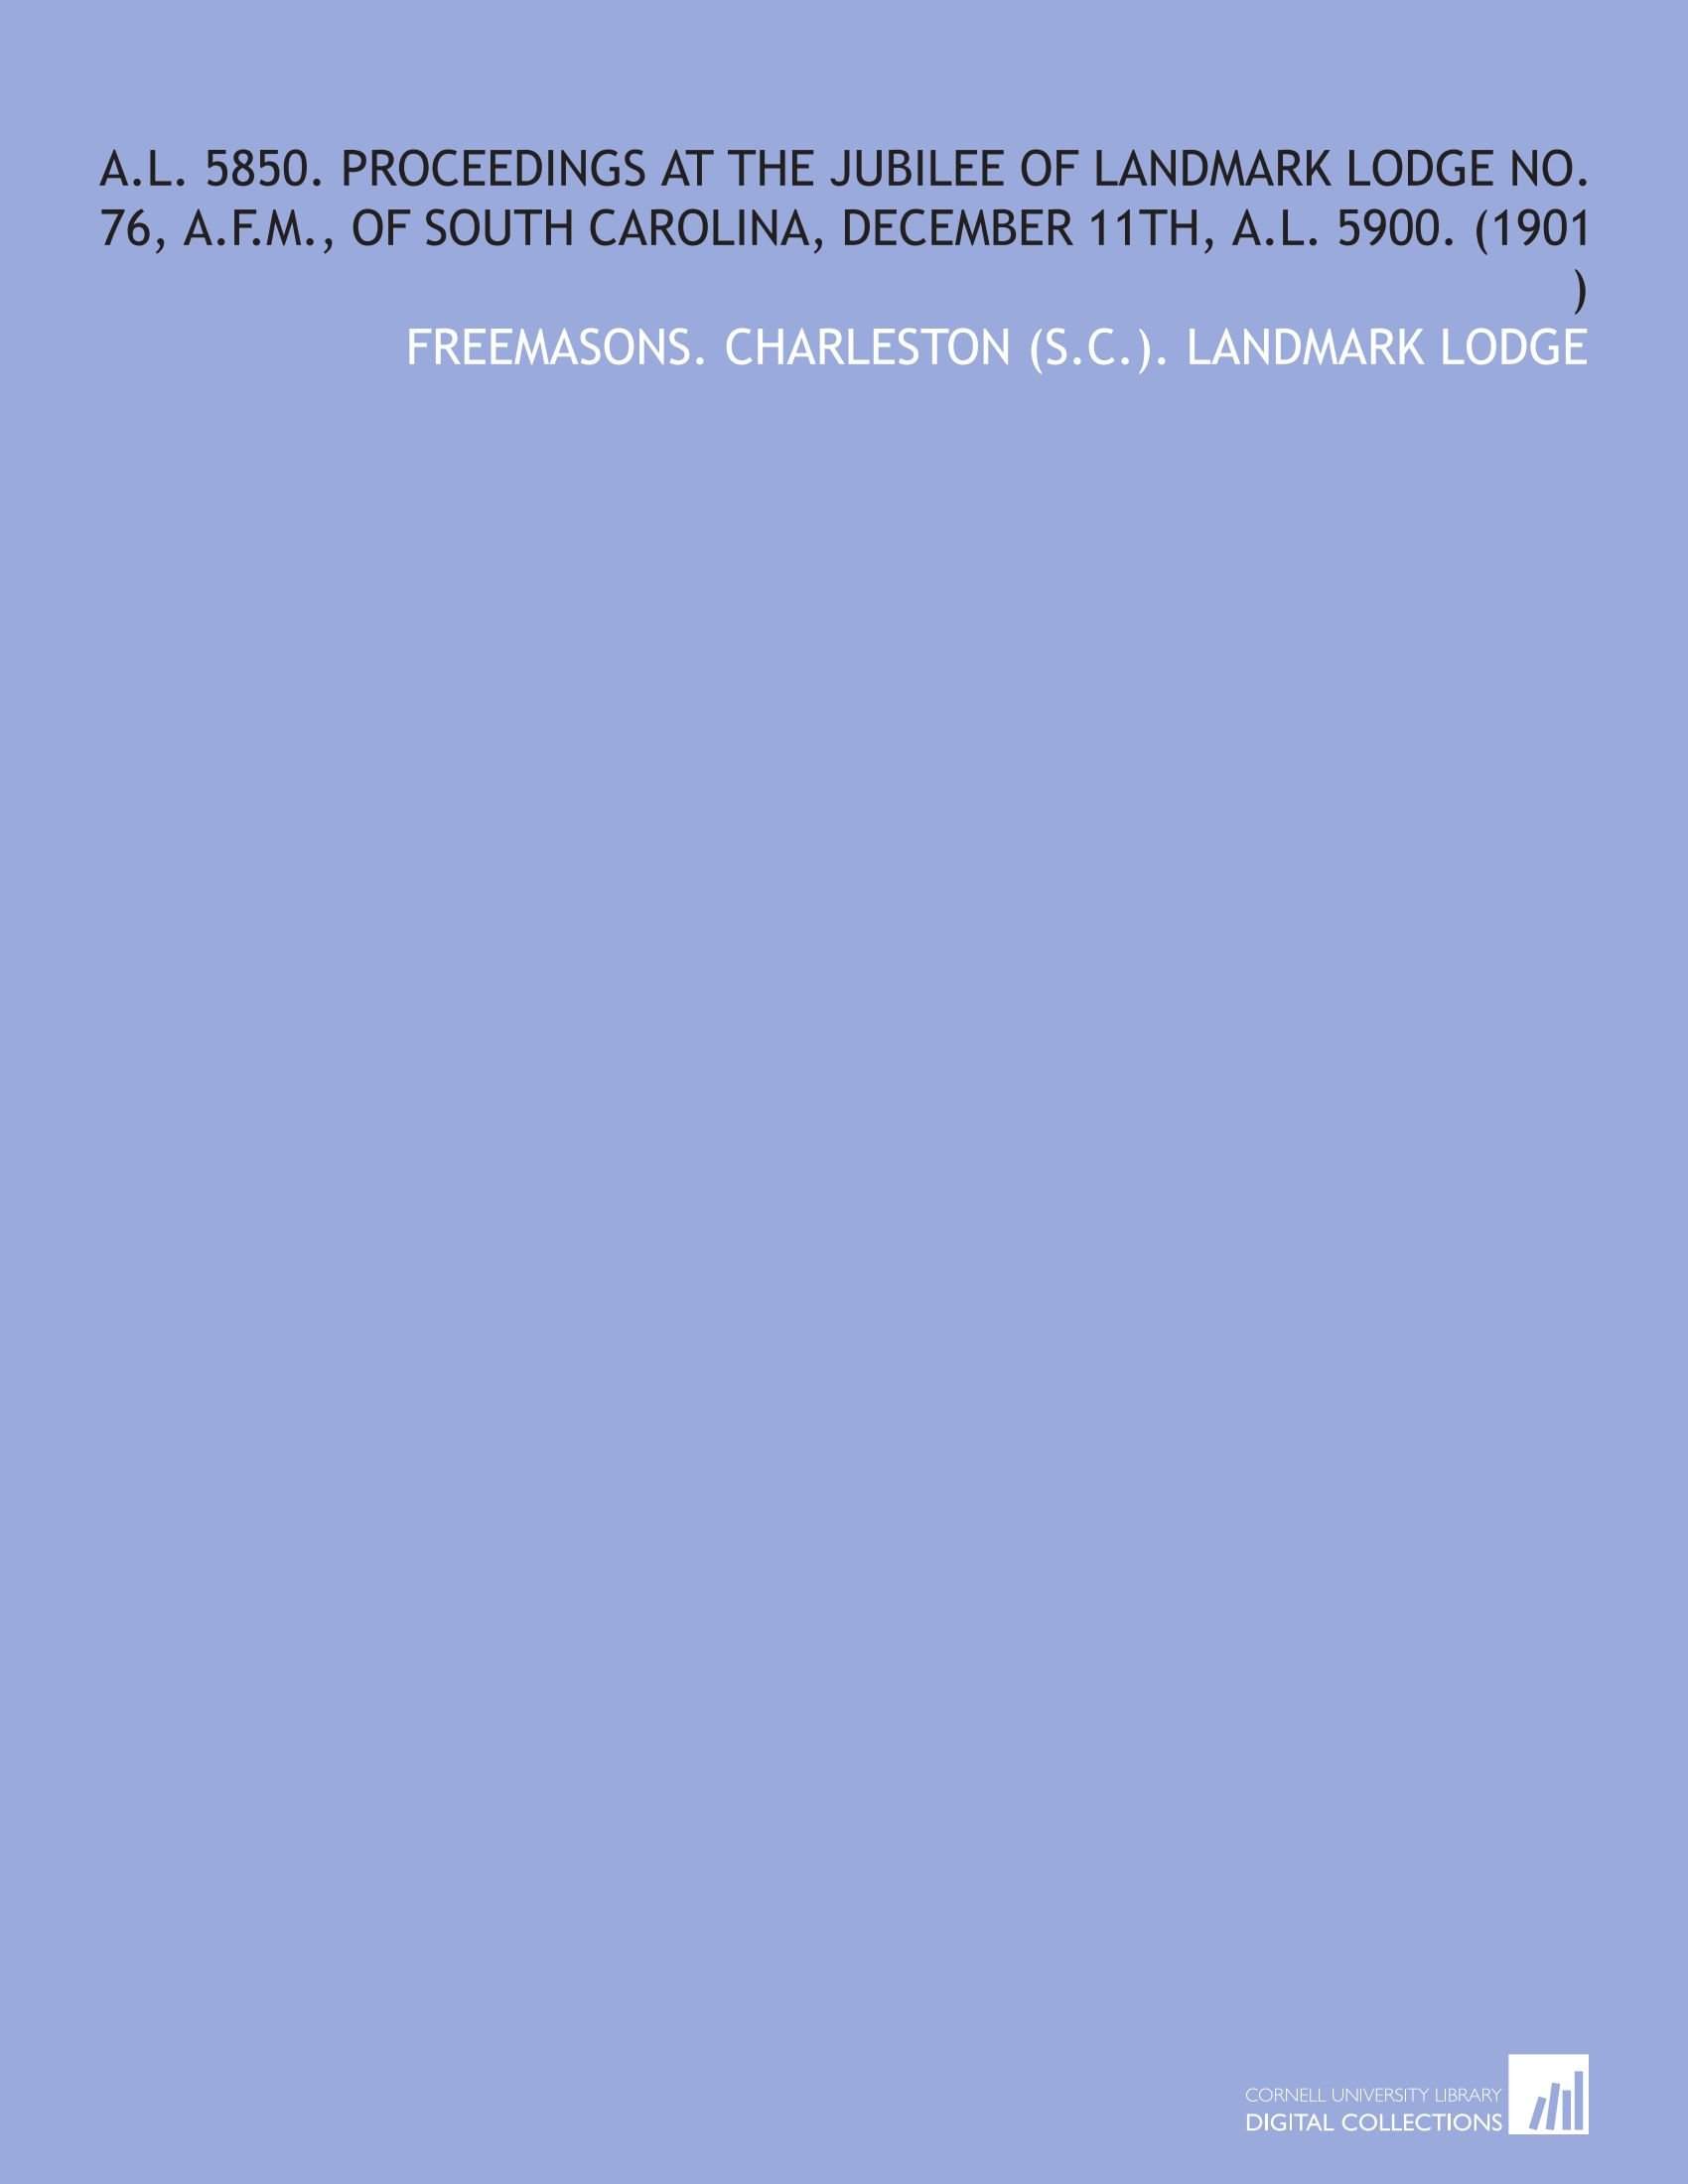 A.L. 5850. Proceedings at the Jubilee of Landmark Lodge No. 76, a.F.M., of South Carolina, December 11th, a.L. 5900. (1901 ) ebook